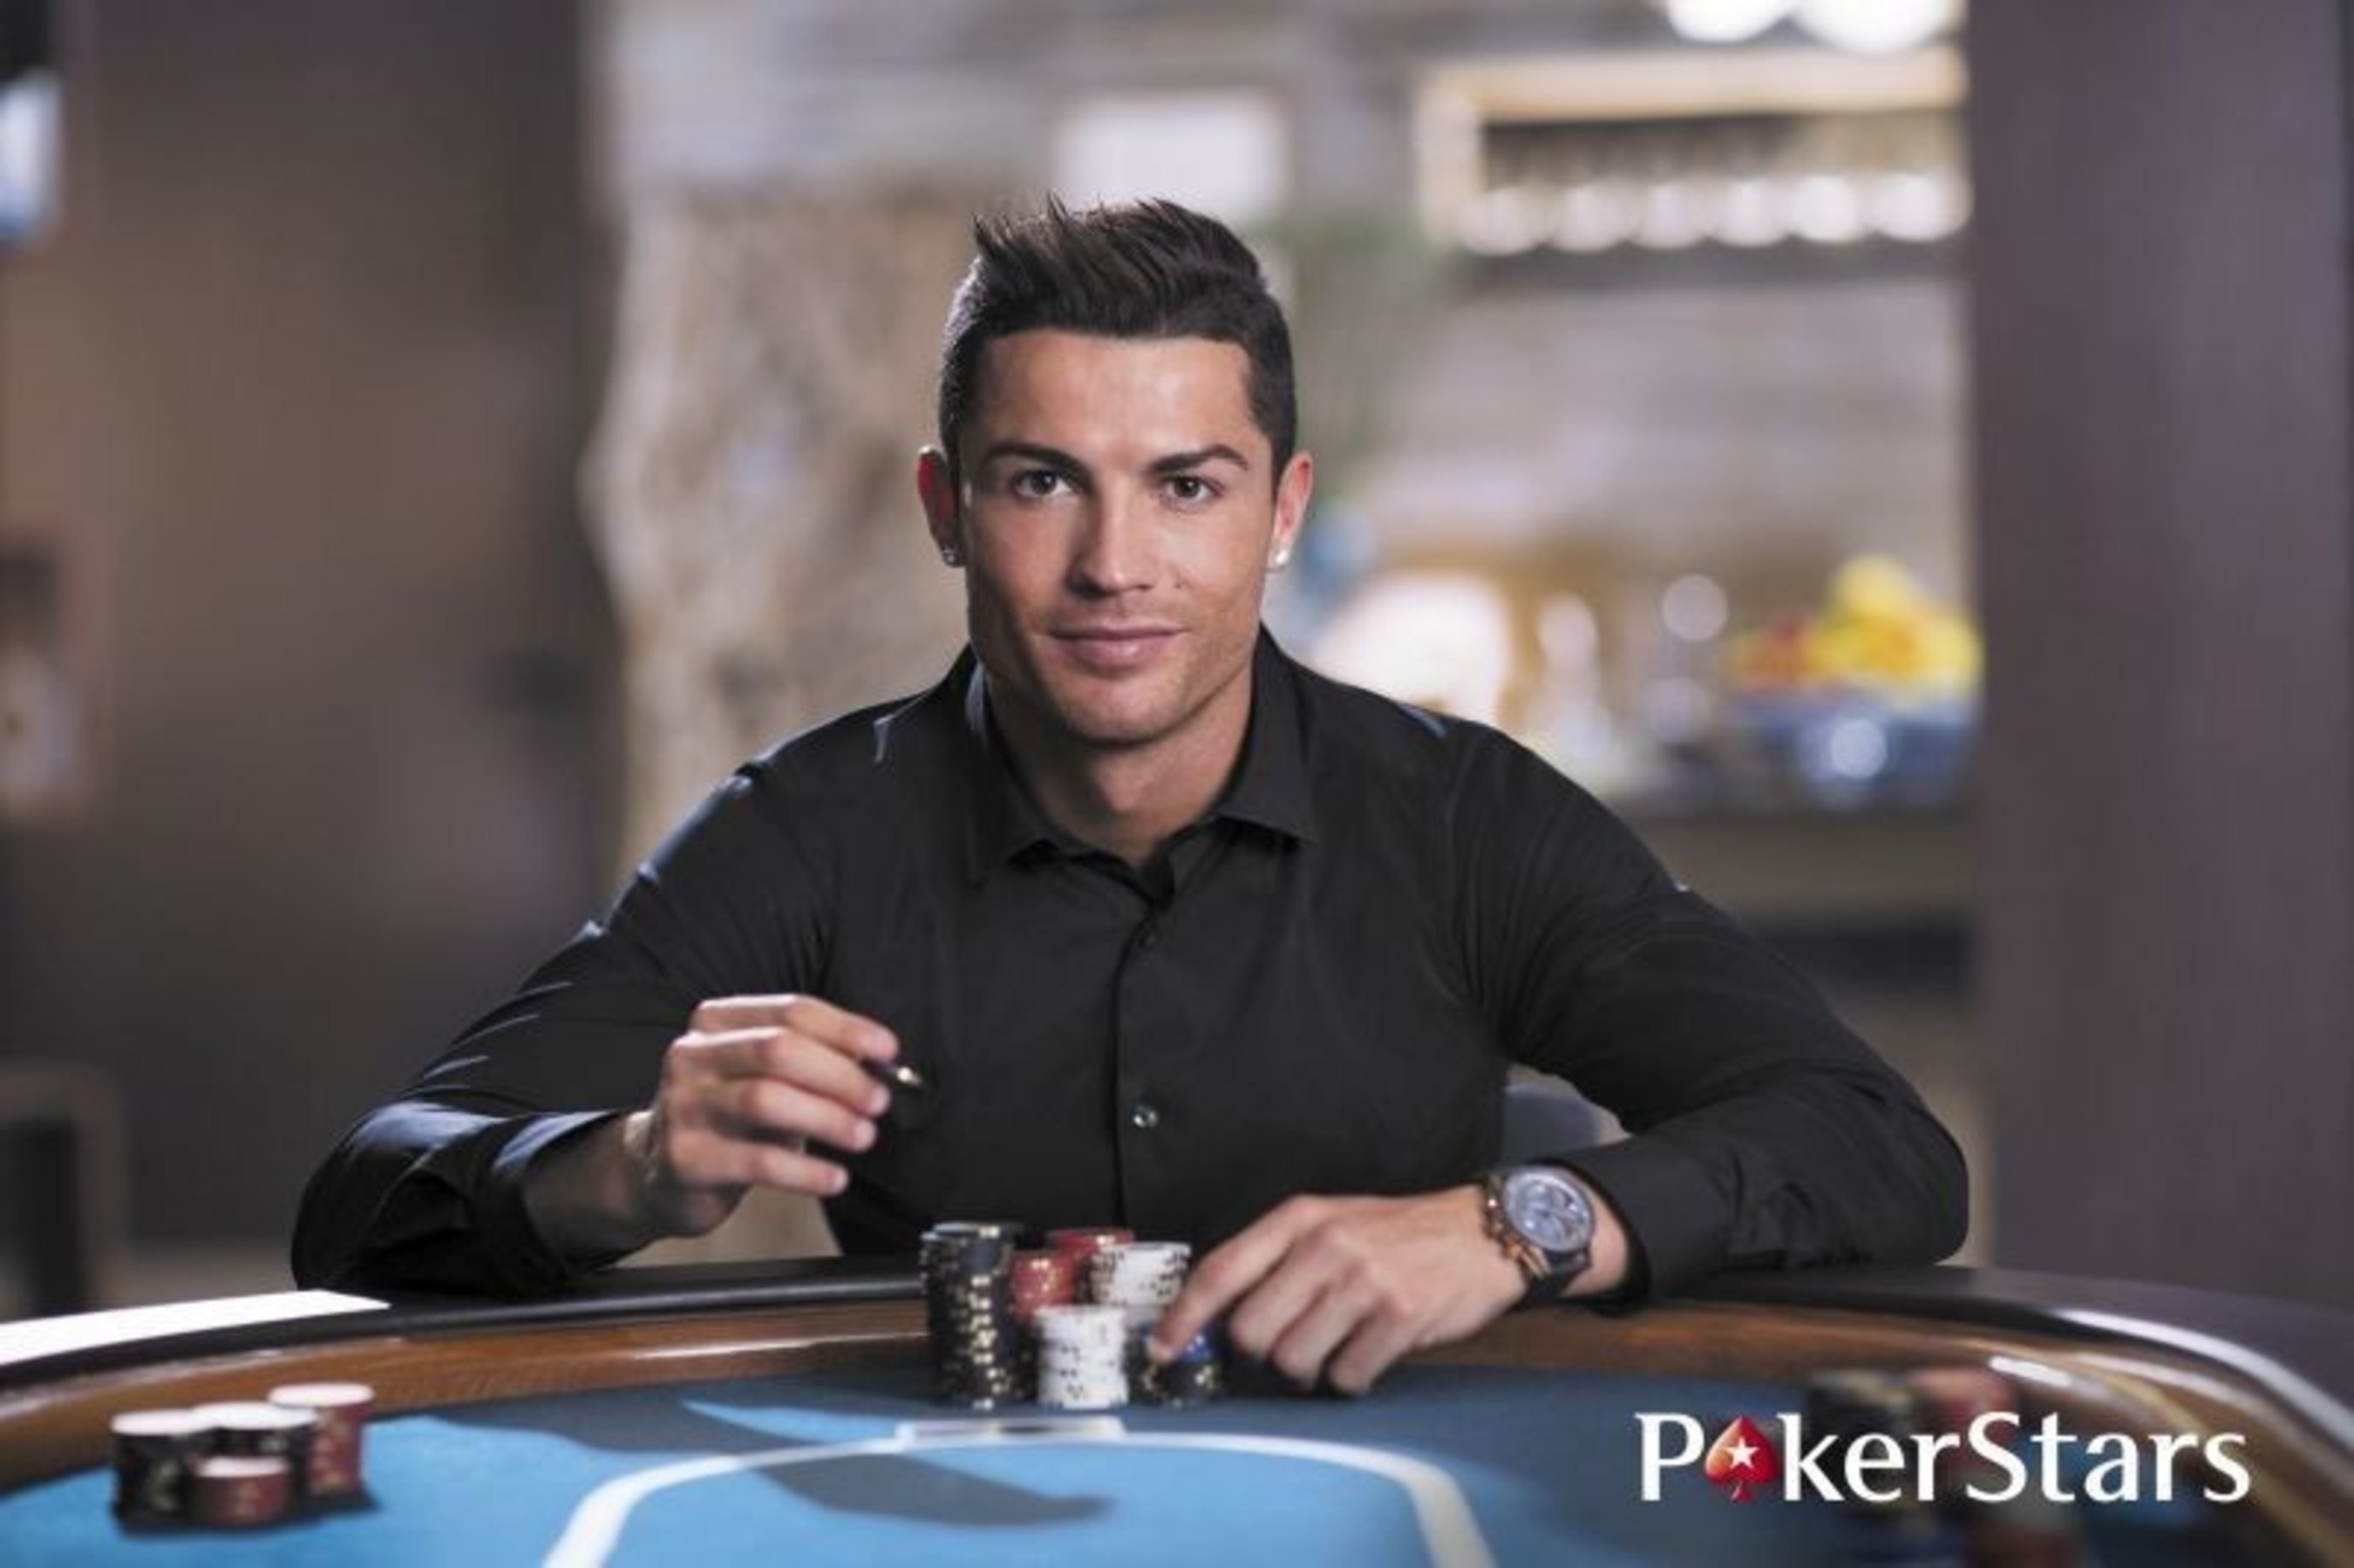 PokerStars Launches Exclusive Facebook Campaign Featuring Cristiano Ronaldo and Neymar Jr